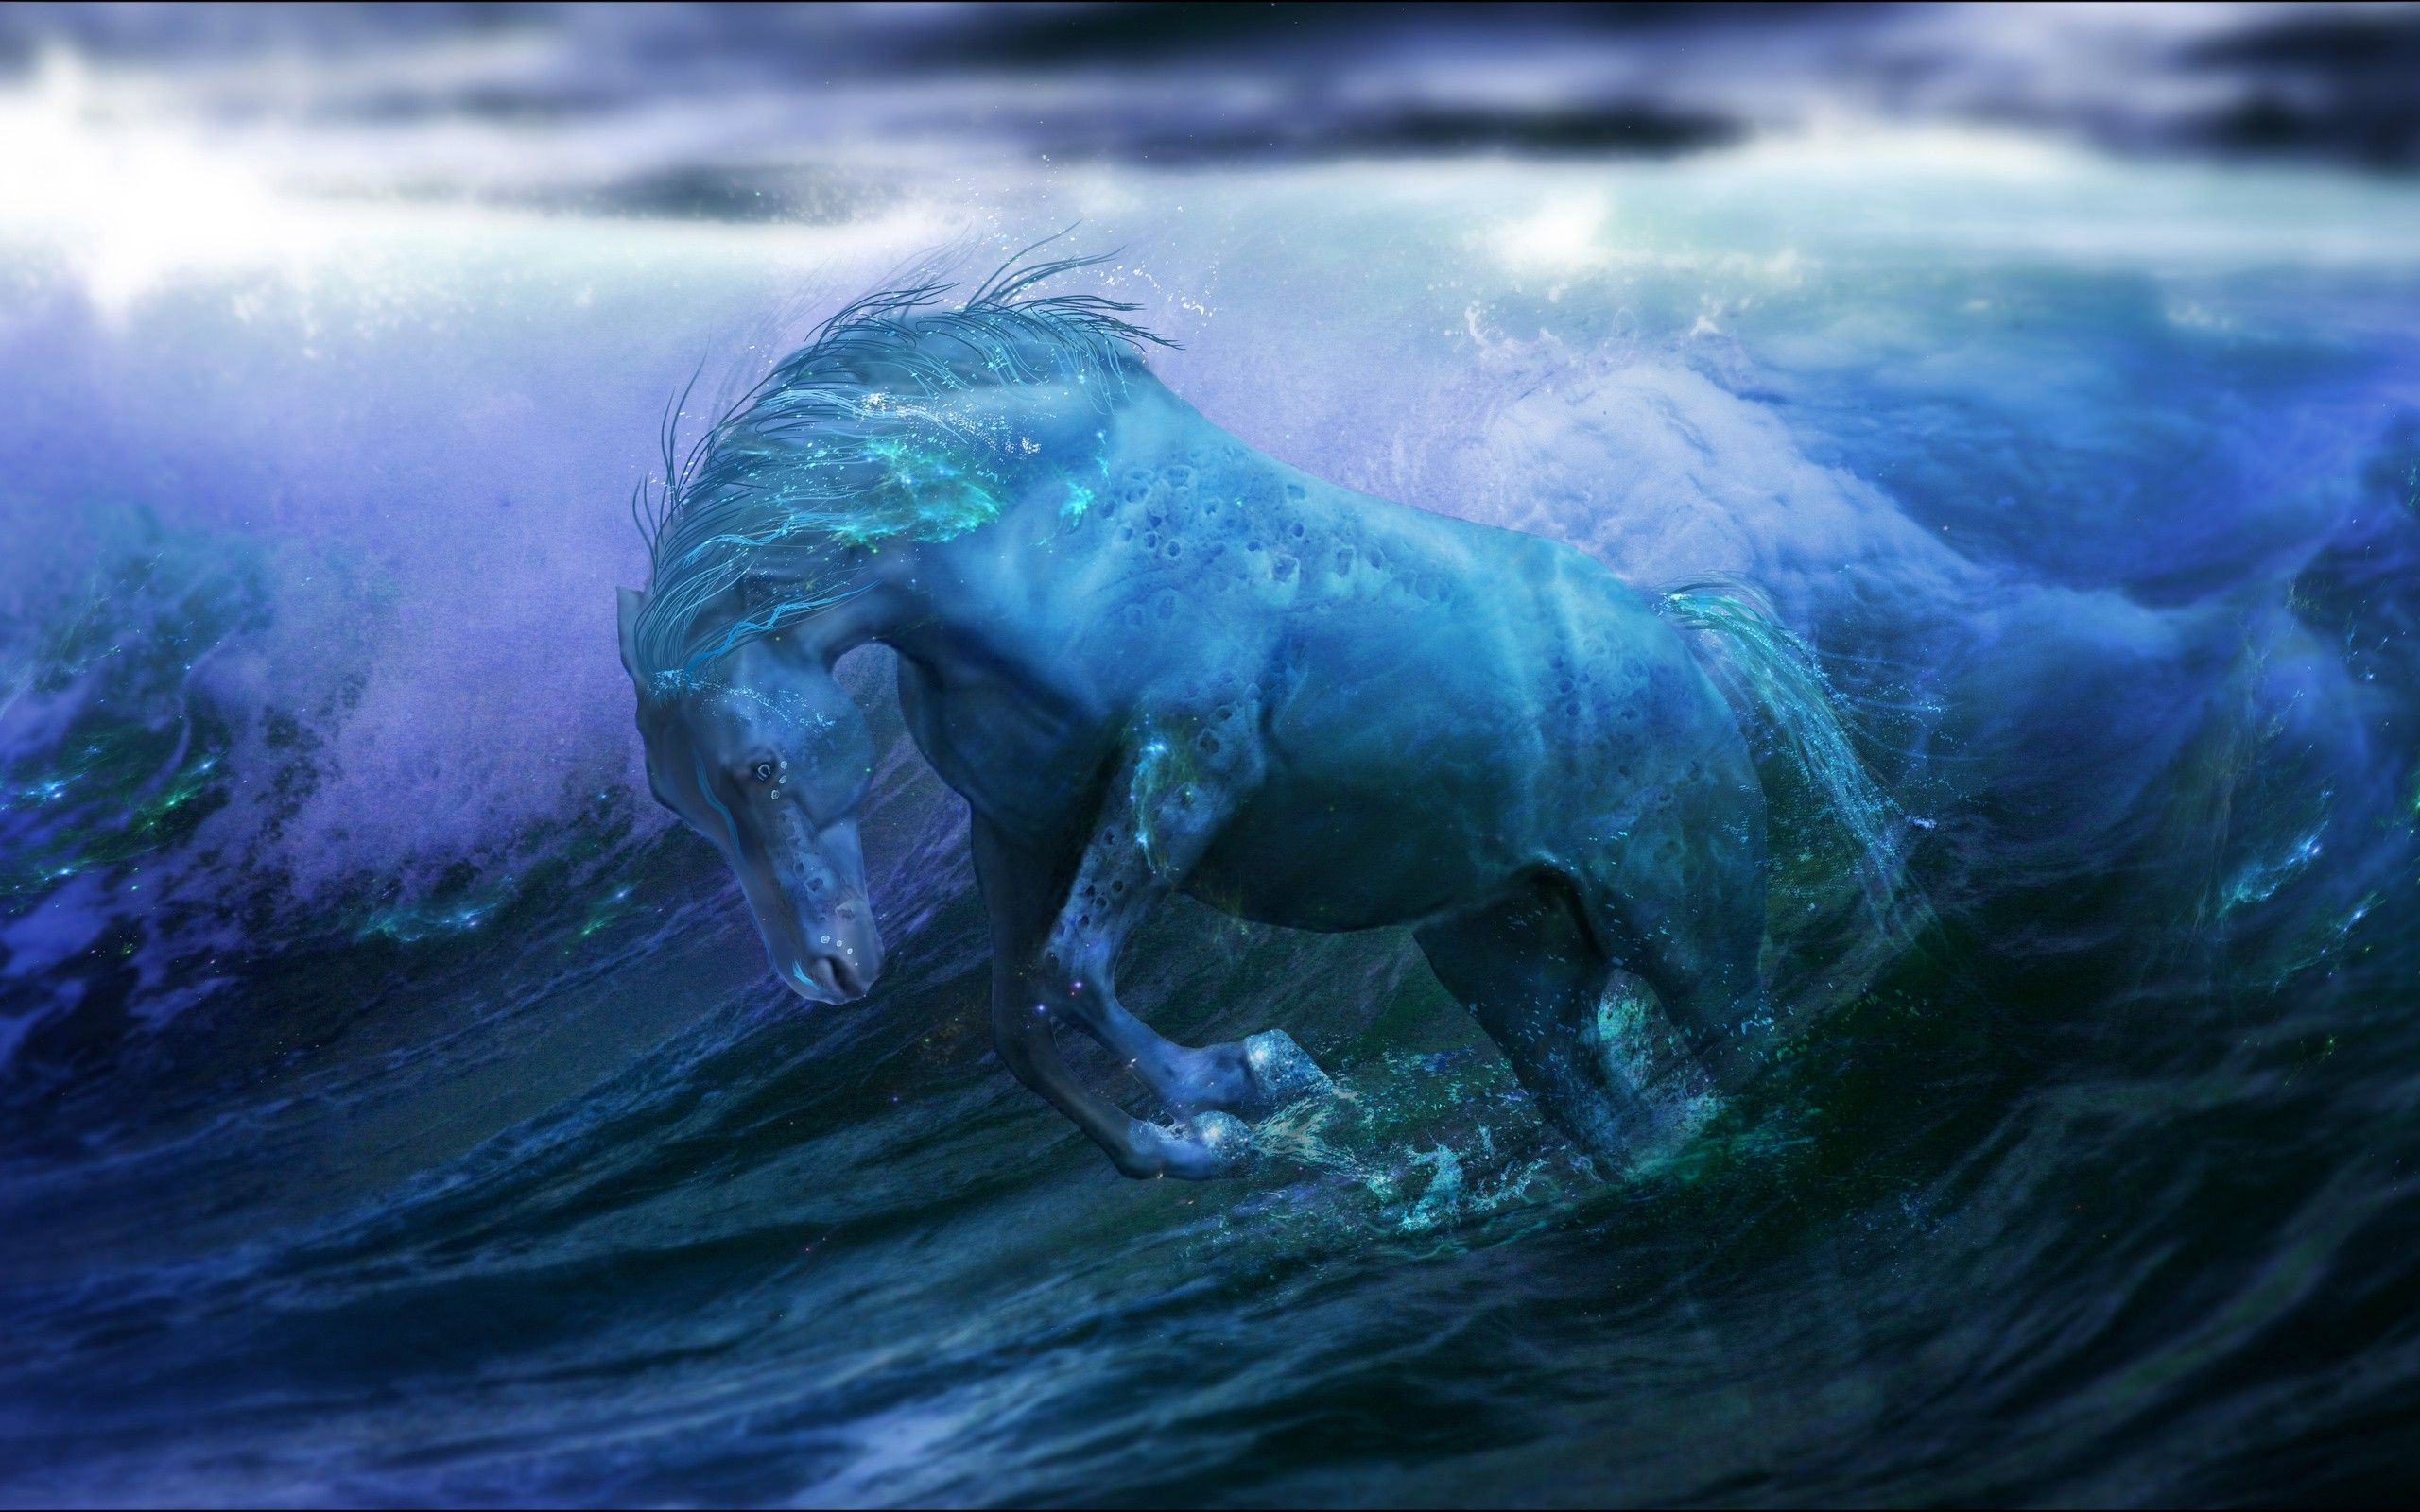 3D Fantasy Art Horses | Abstract Waves Fantasy Art Horses Artwork Wallpaper  Background